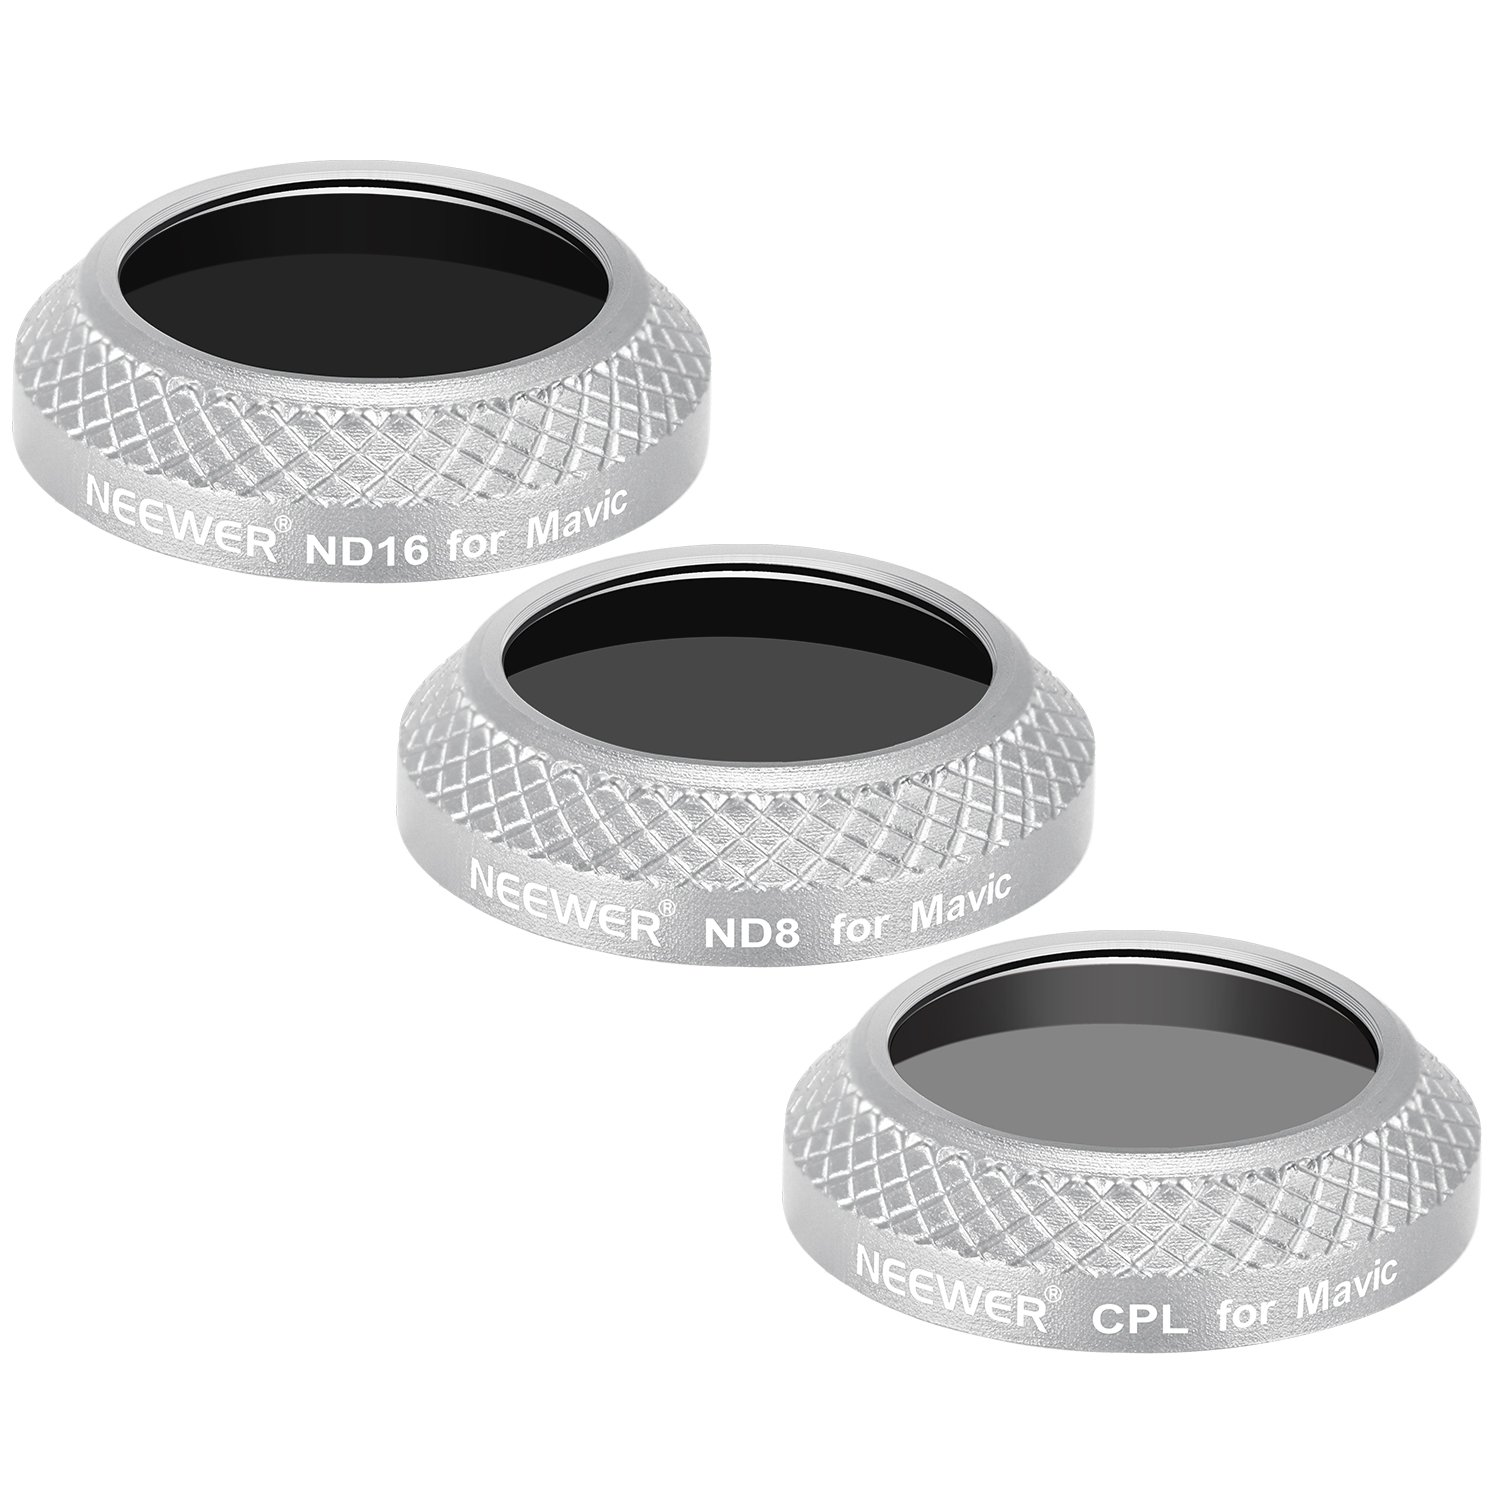 Neewer 3 Pieces Filter Kit for DJI Mavic Pro Drone Quadcopter Includes: CPL Multi Coated ND8 and ND16 Lens Filters Black Aluminum Alloy Frame Made of Optical Glass